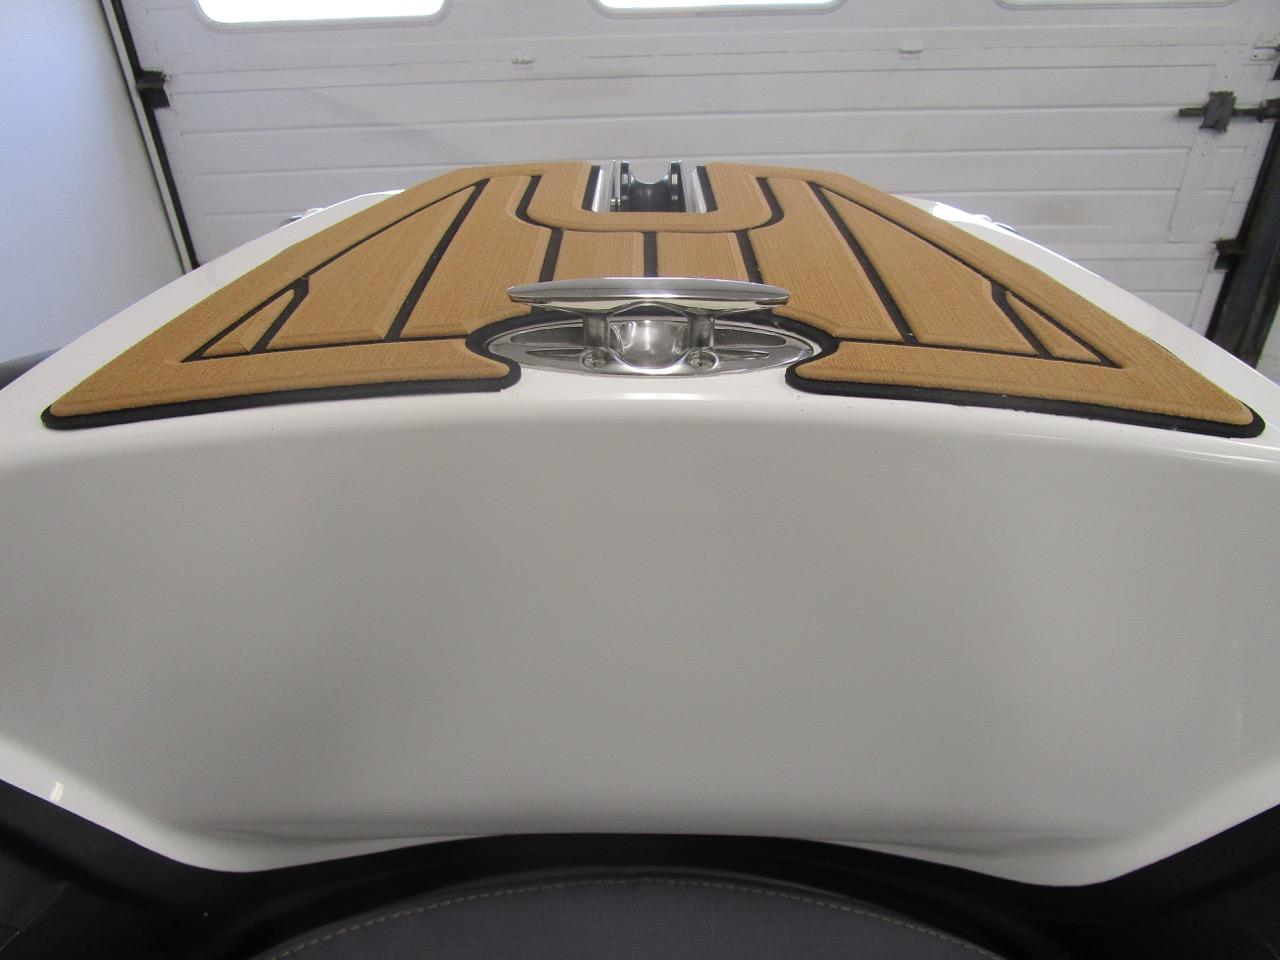 GRAND Golden Line G580 RIB cleat up